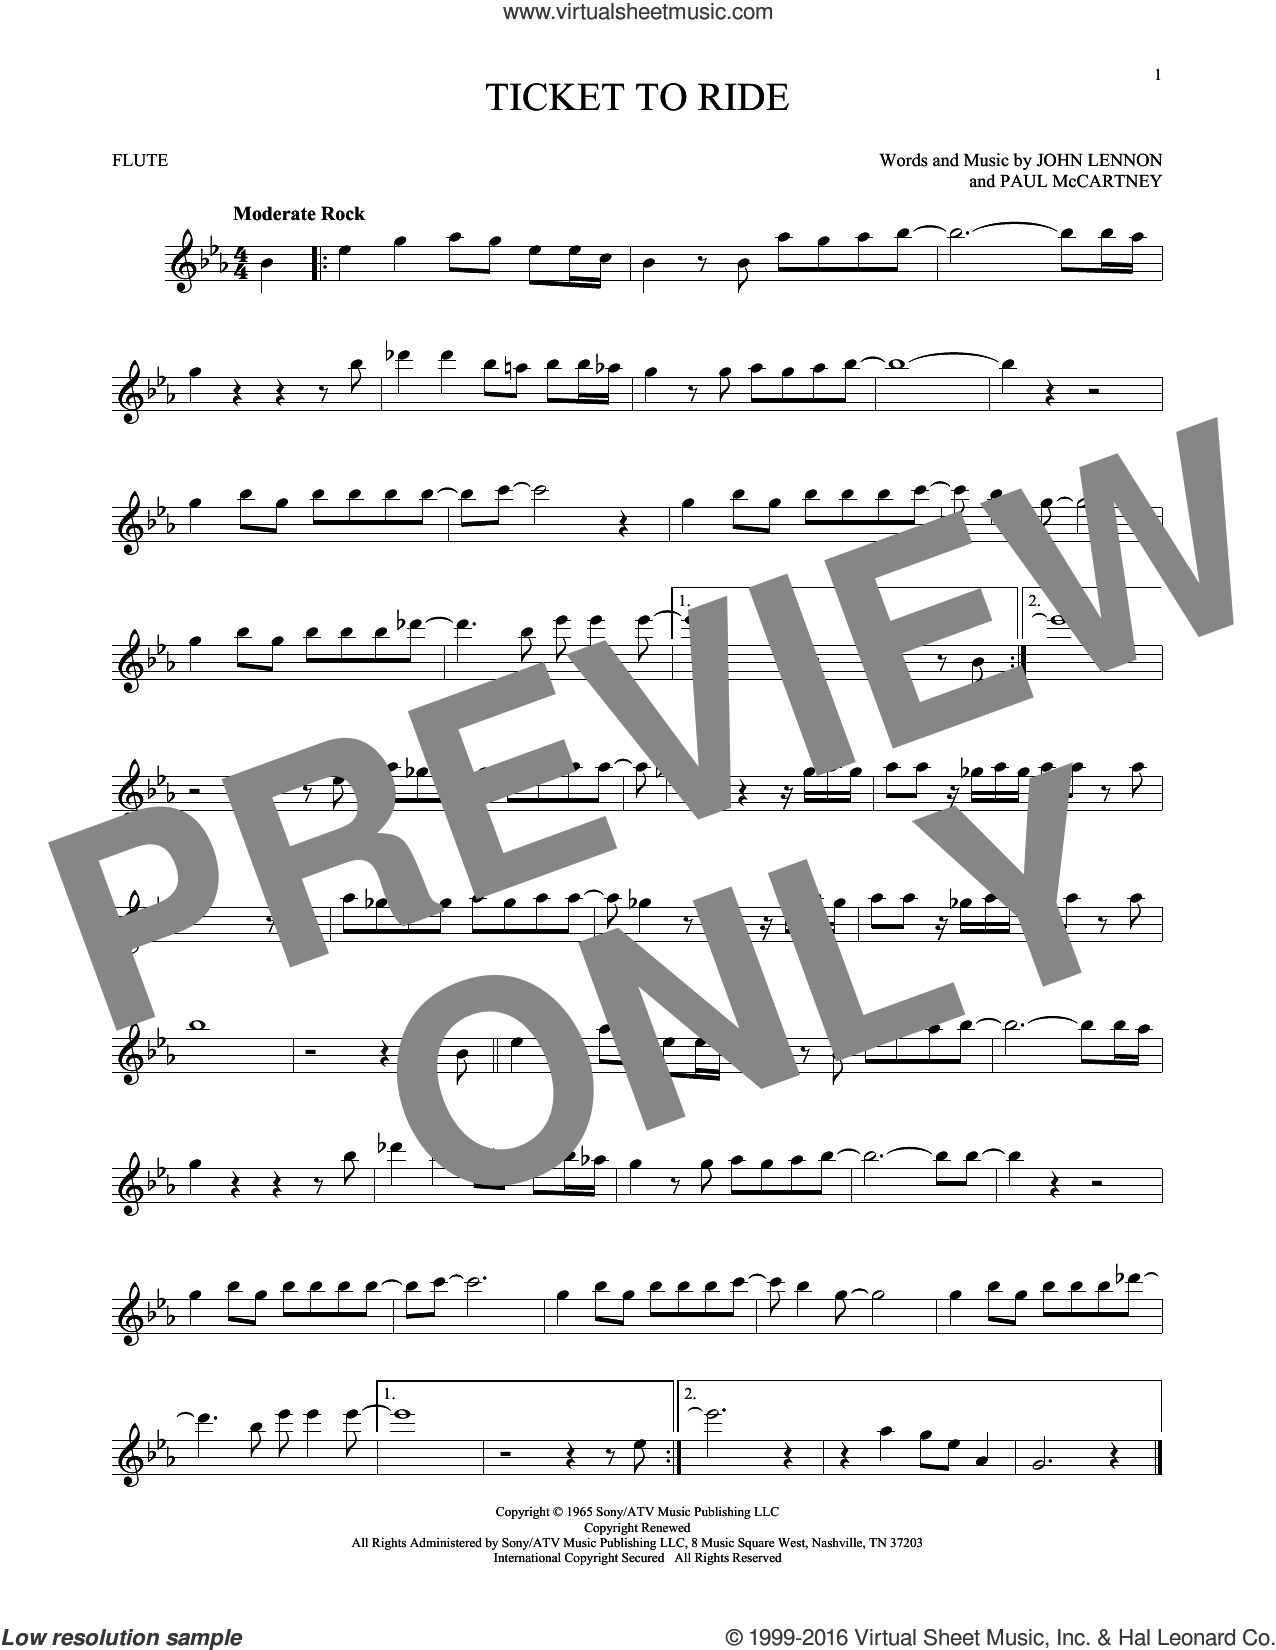 Ticket To Ride sheet music for flute solo by The Beatles, John Lennon and Paul McCartney, intermediate skill level